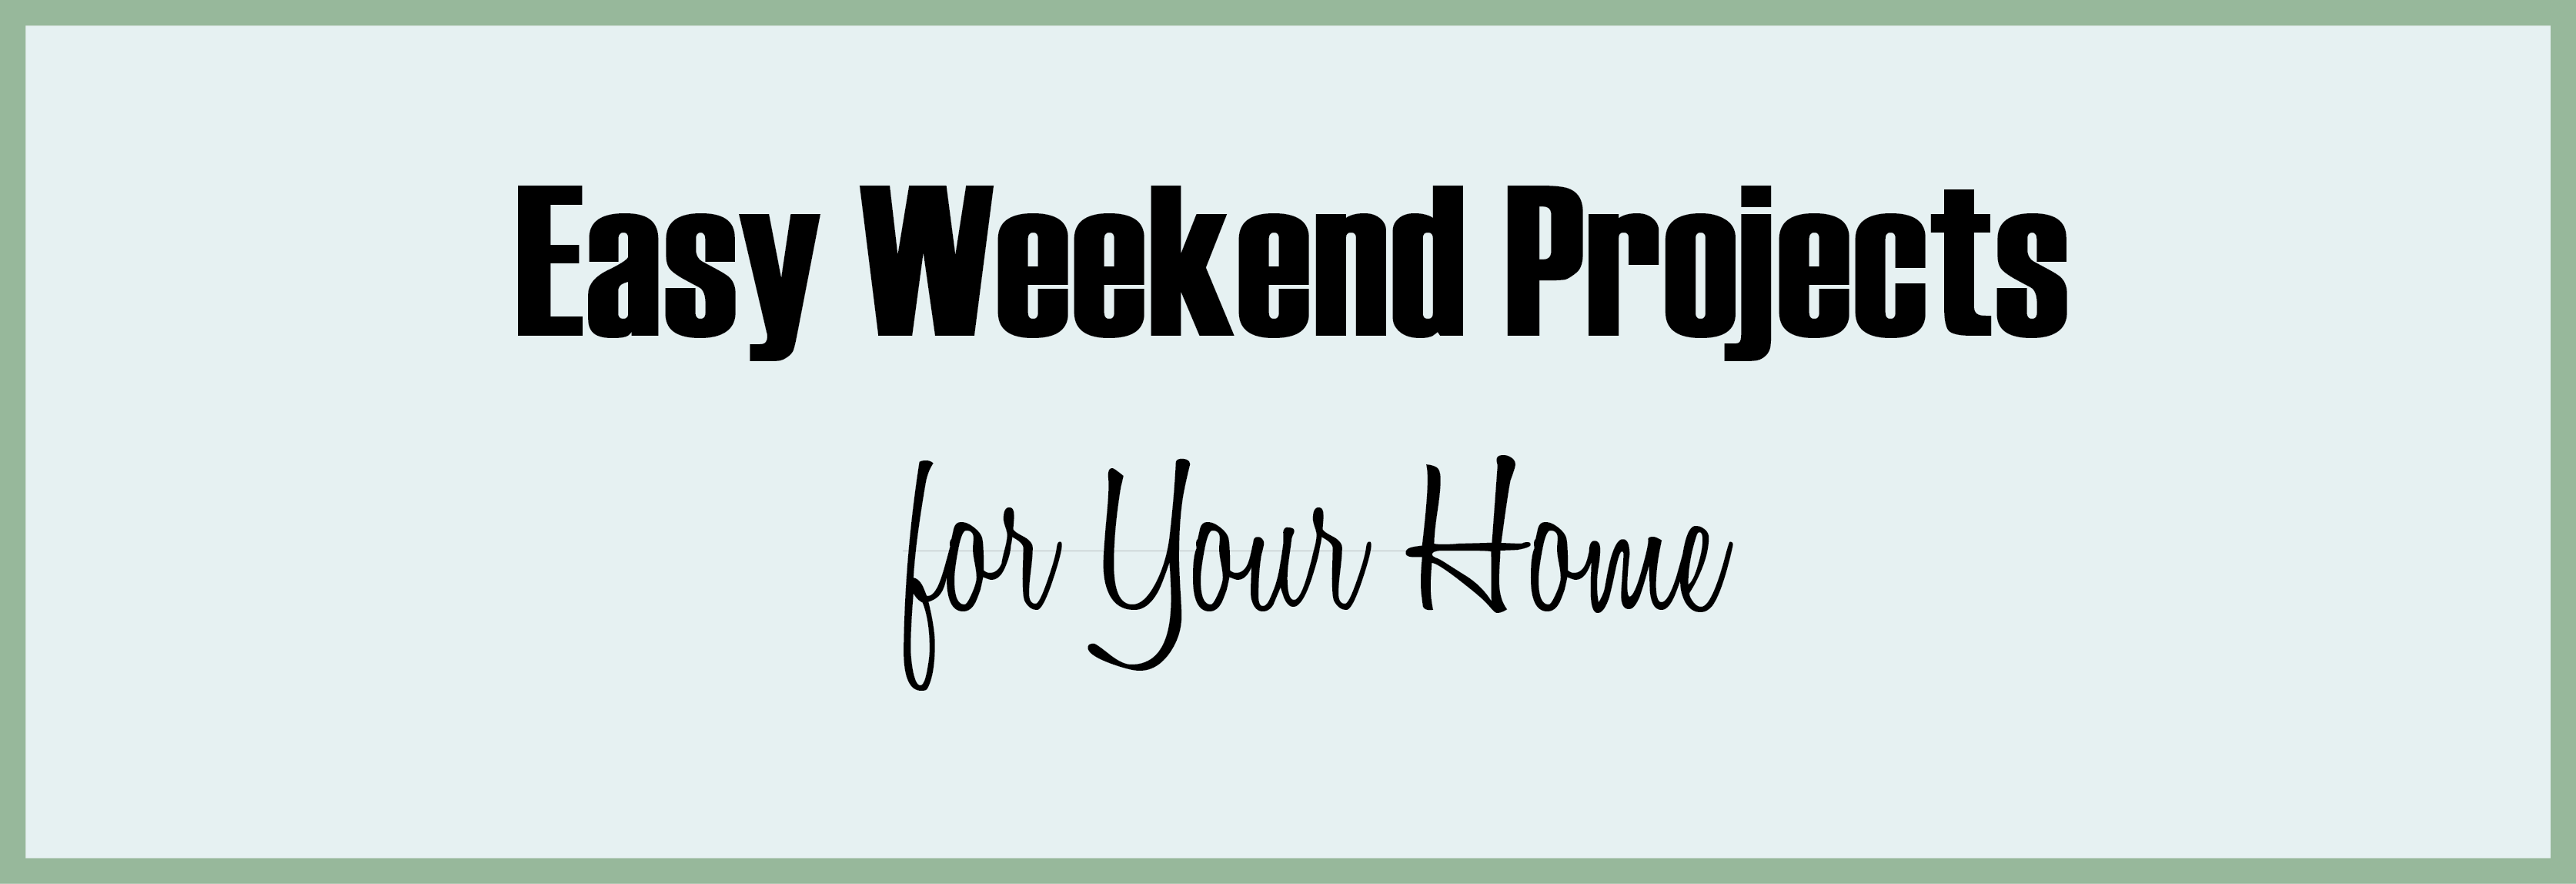 Weekend Projects for Home